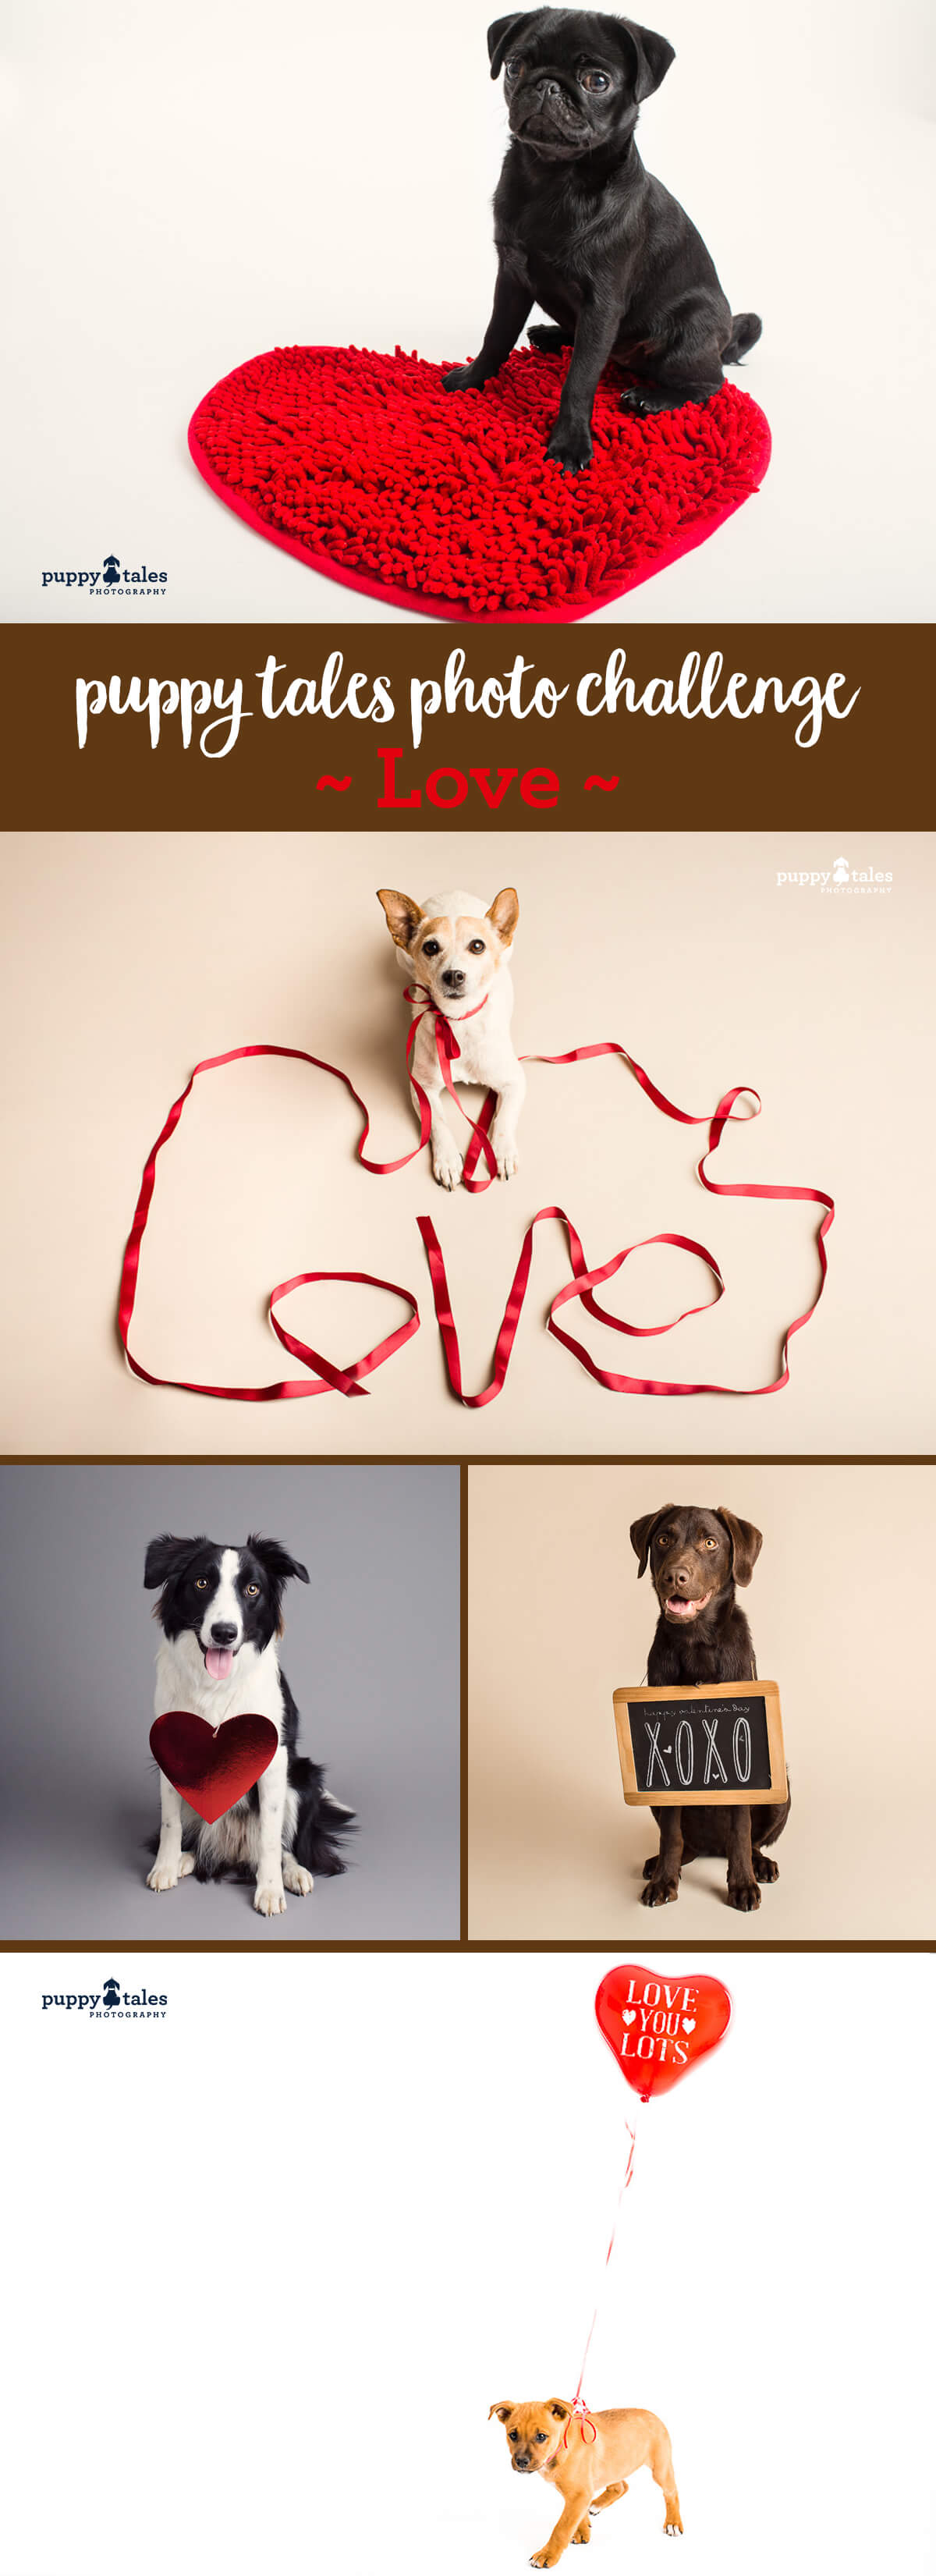 Adorable dog photos for Valentines Day